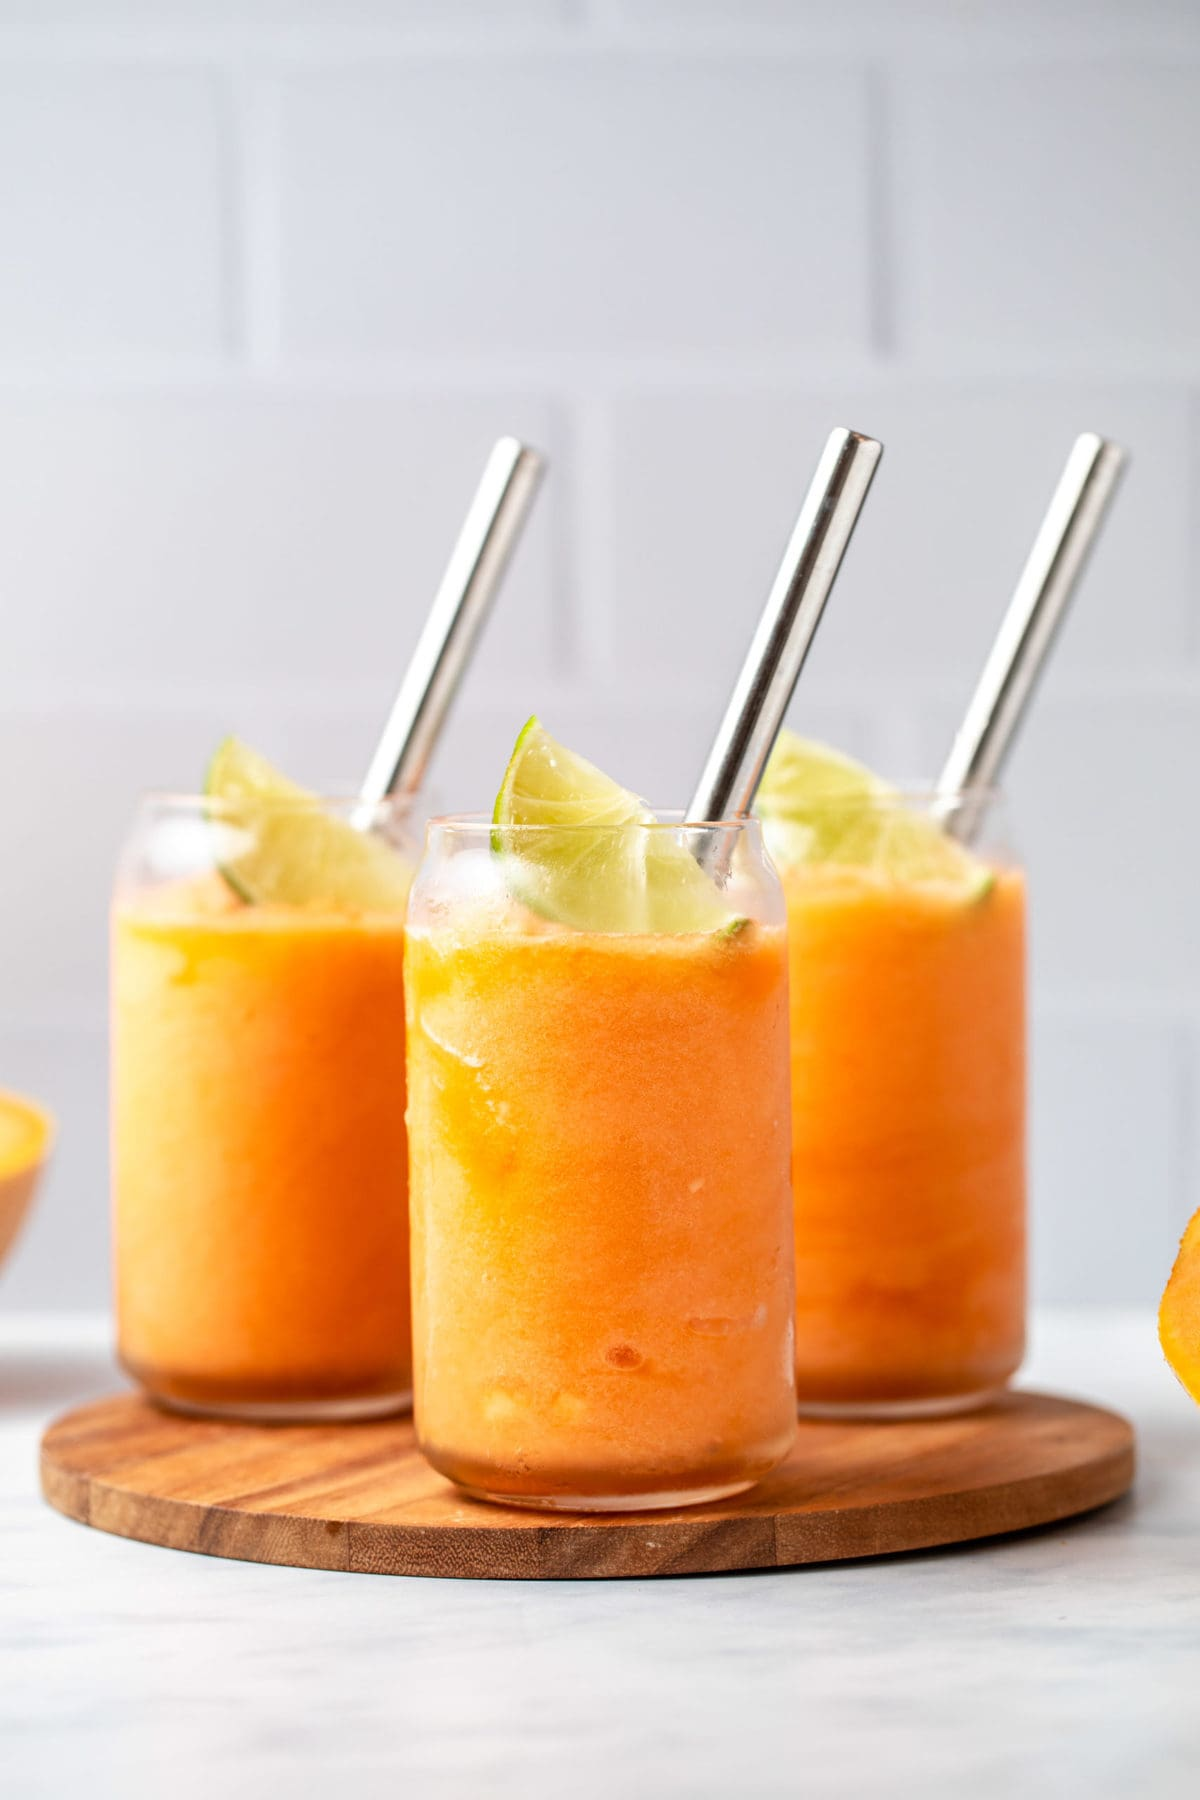 3 glasses of cantaloupe slushie topped with a lime wedge and a metal straw